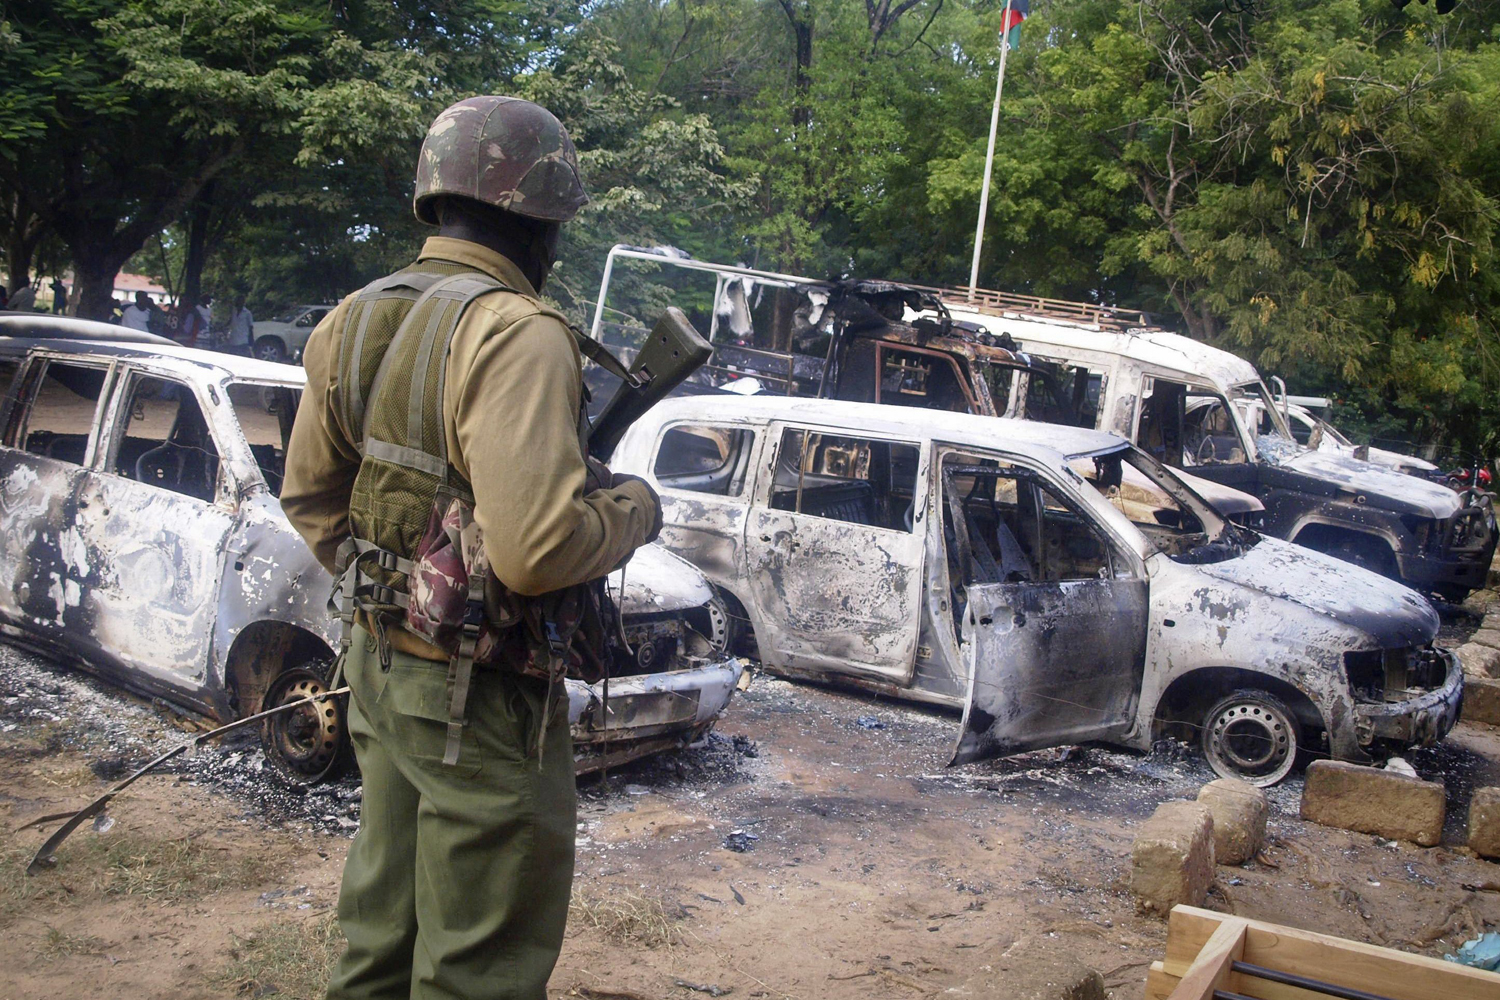 A member of the Kenyan security forces observes the remains of vehicles destroyed by al-Shabab militants in the coastal town of Mpeketoni, about 100 km (60 miles) from the Somali border, on June 16, 2014